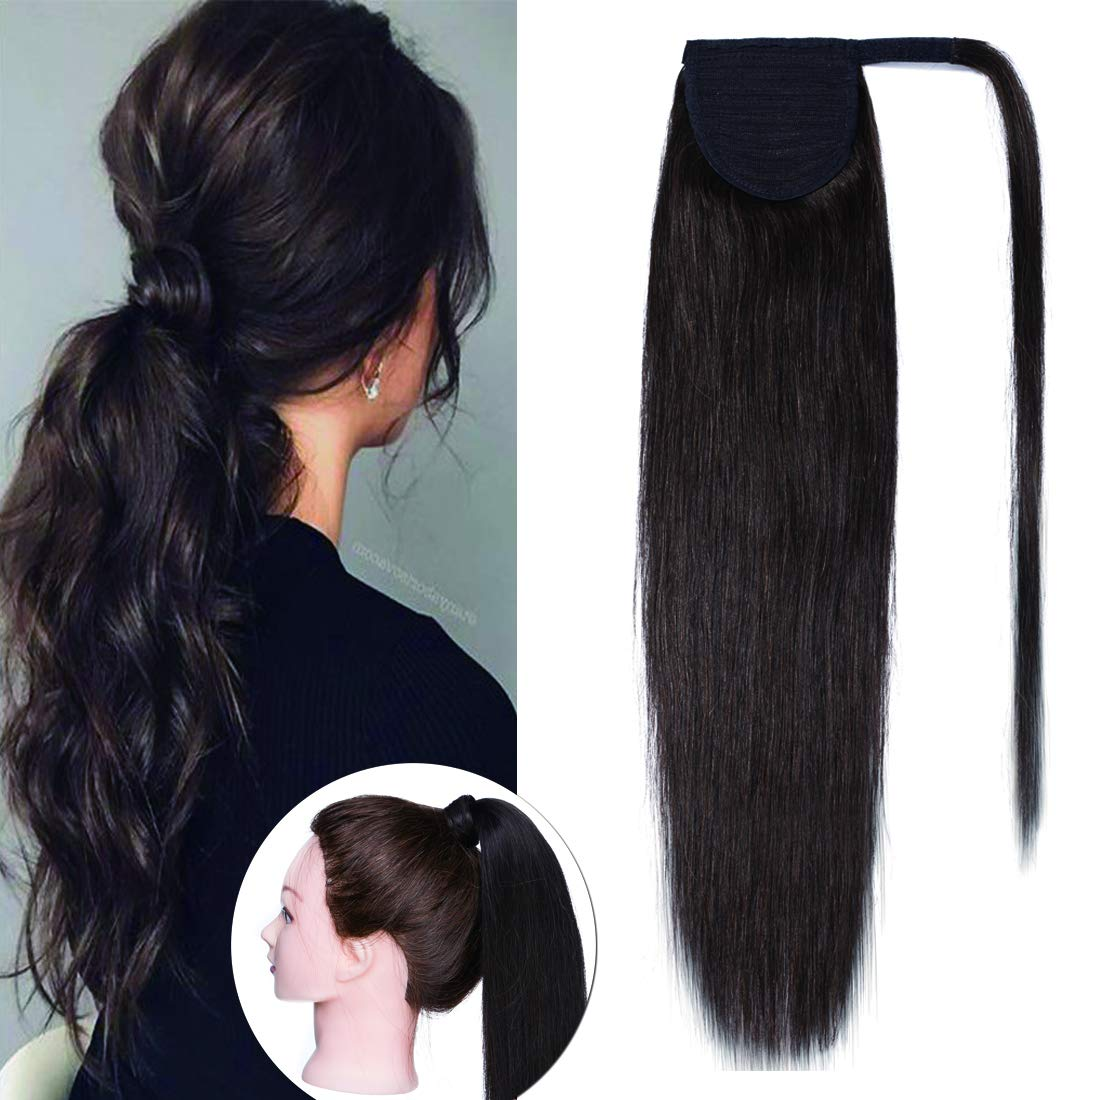 SEGO Ponytail Extension Human Overseas parallel import regular item Hair Wr Extensions Tails Pony Weekly update